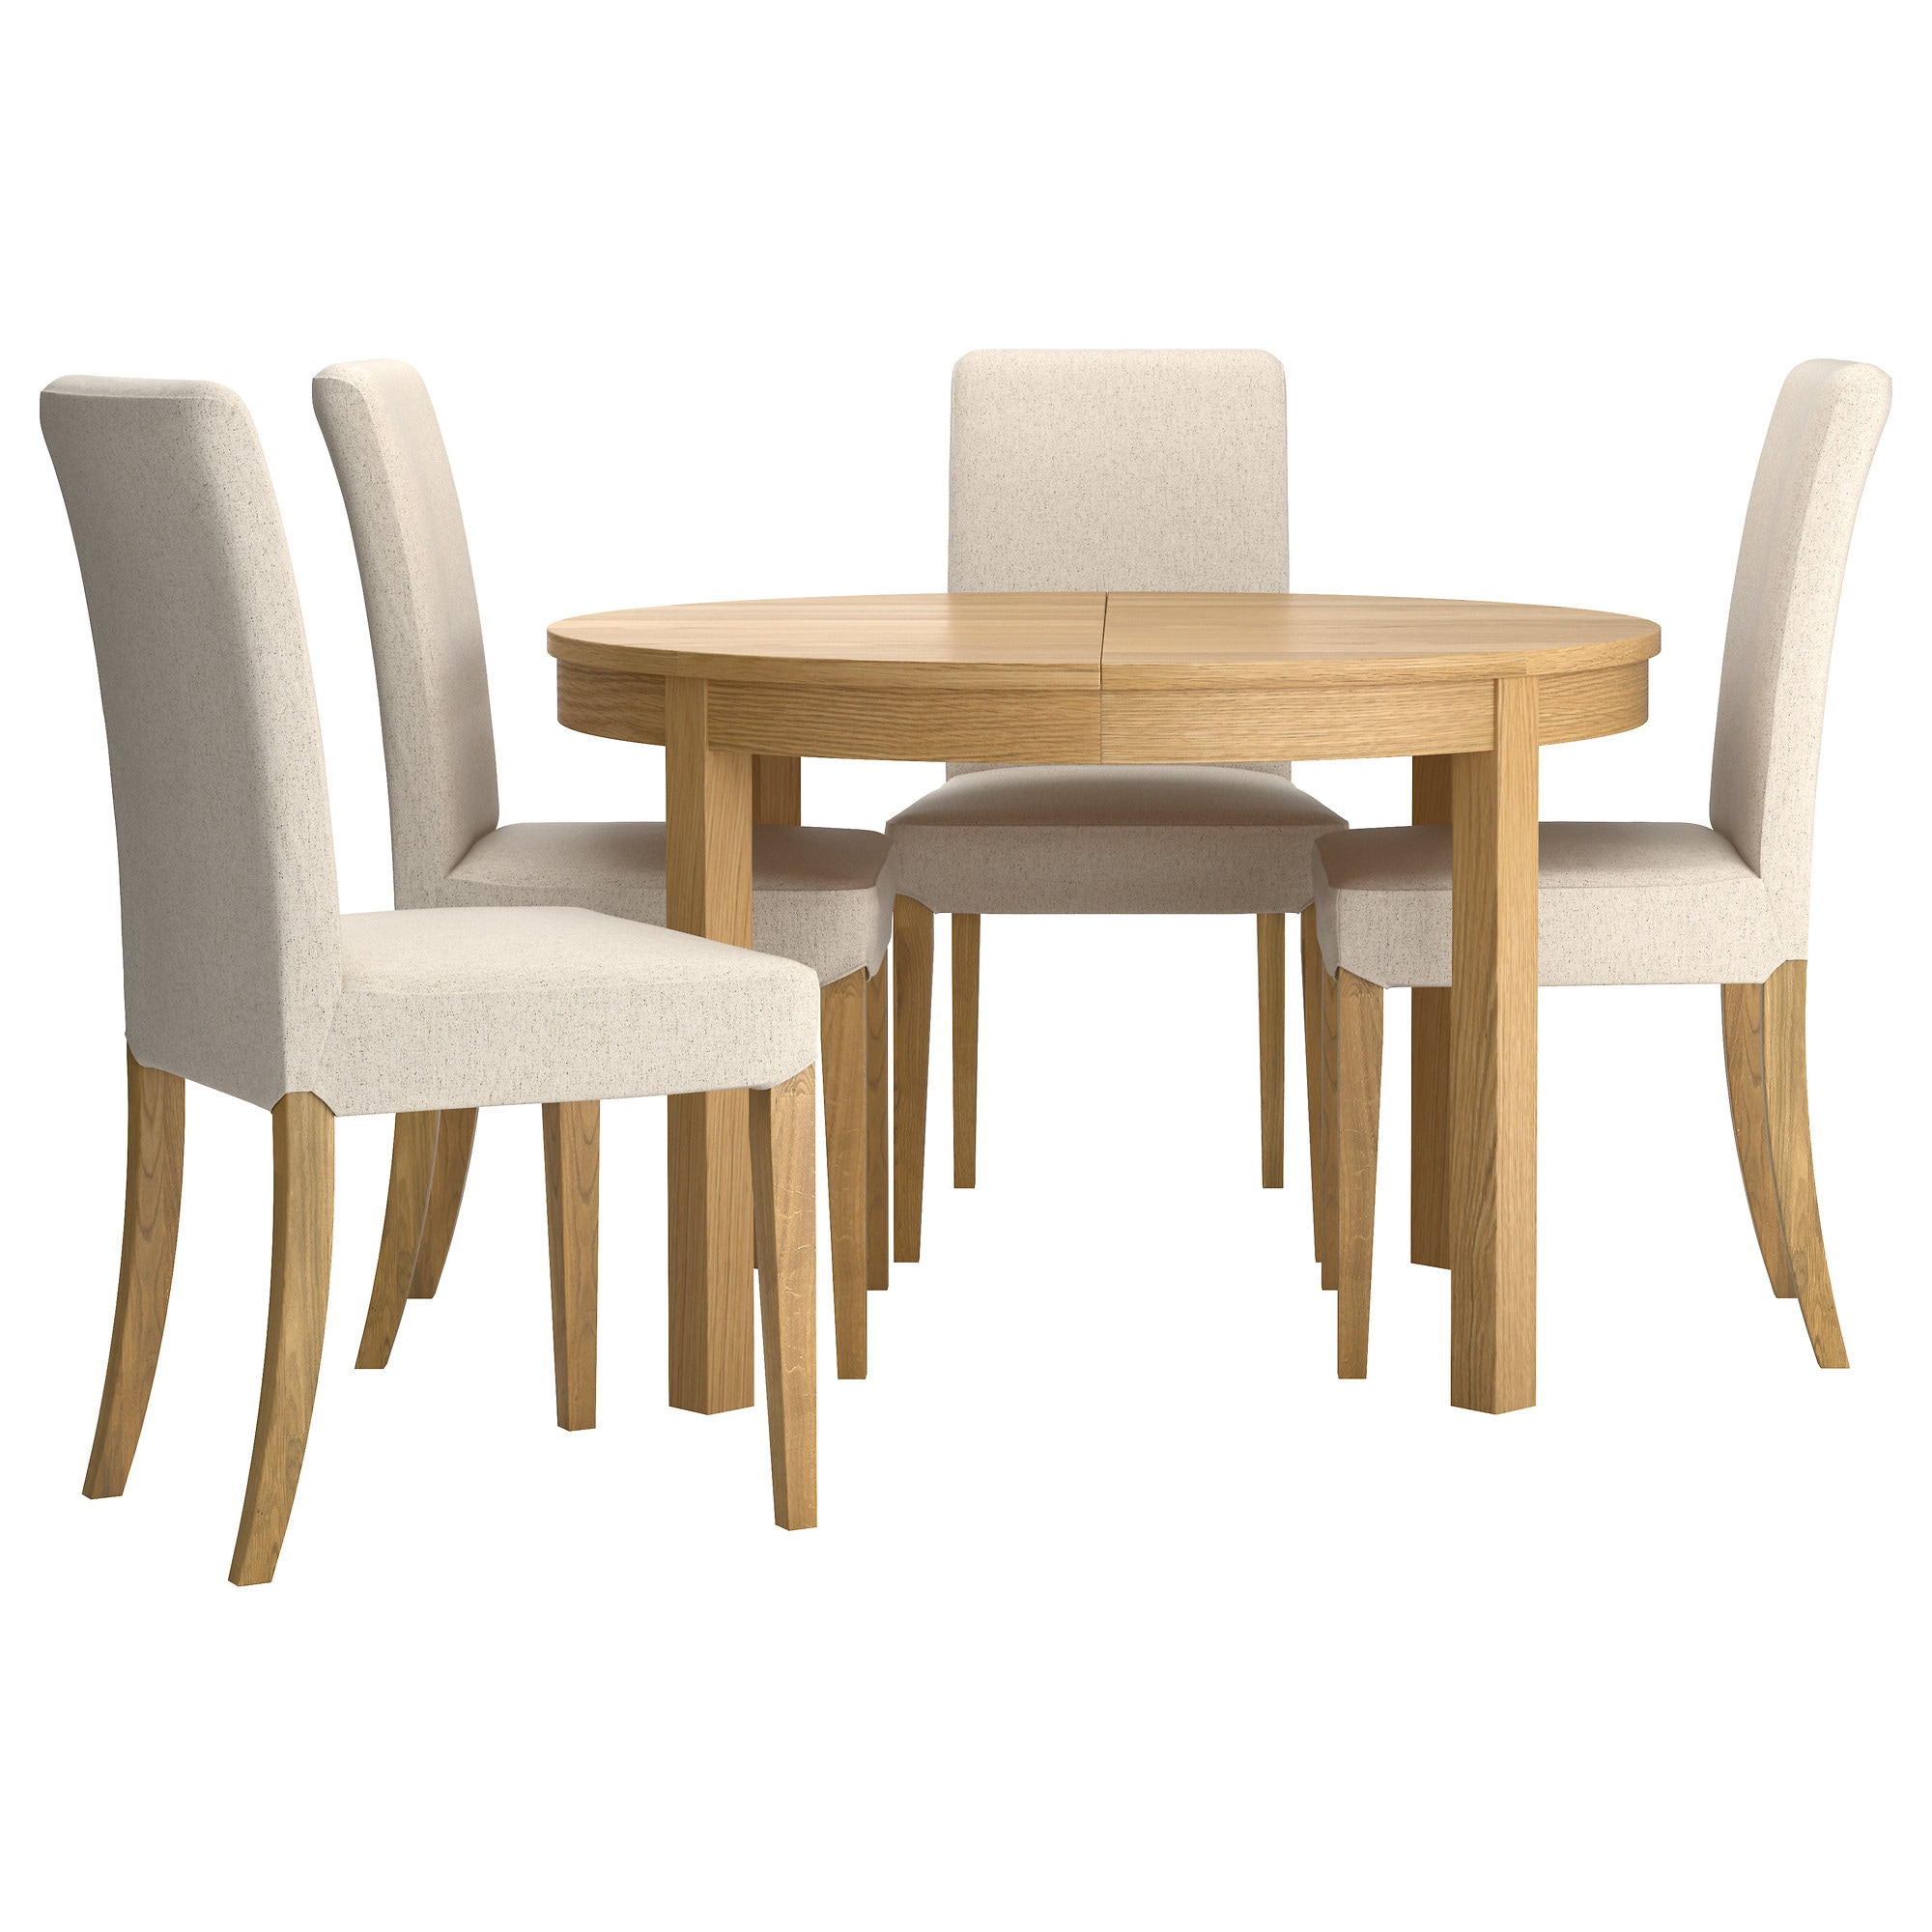 Ordinaire Dining Table Sets U0026 Dining Room Sets   IKEA